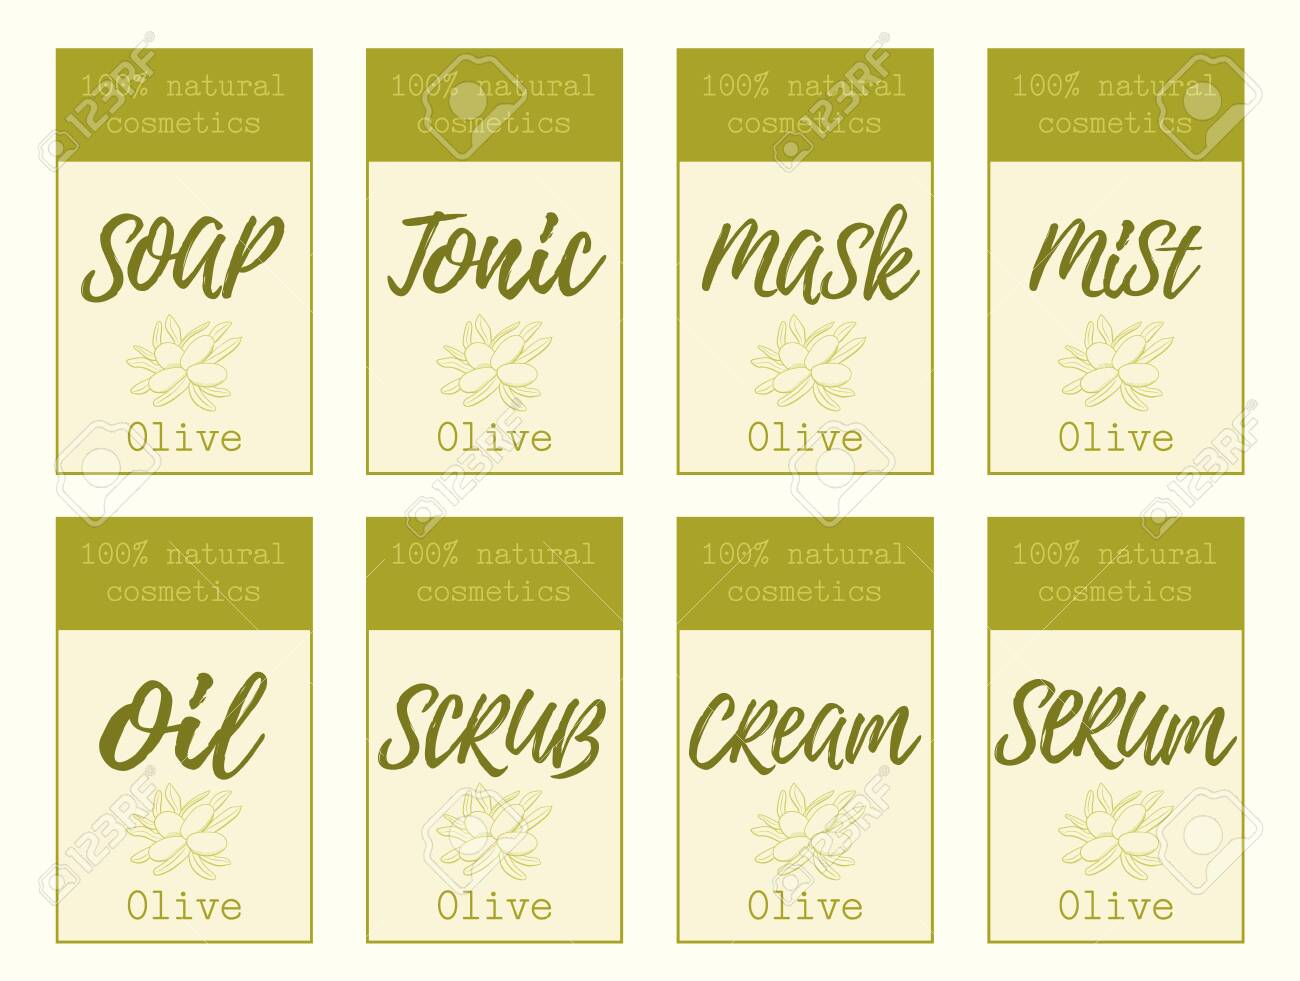 Set of labels for olive cosmetics packaging design. Organic cosmetics and natural care. - 143733014